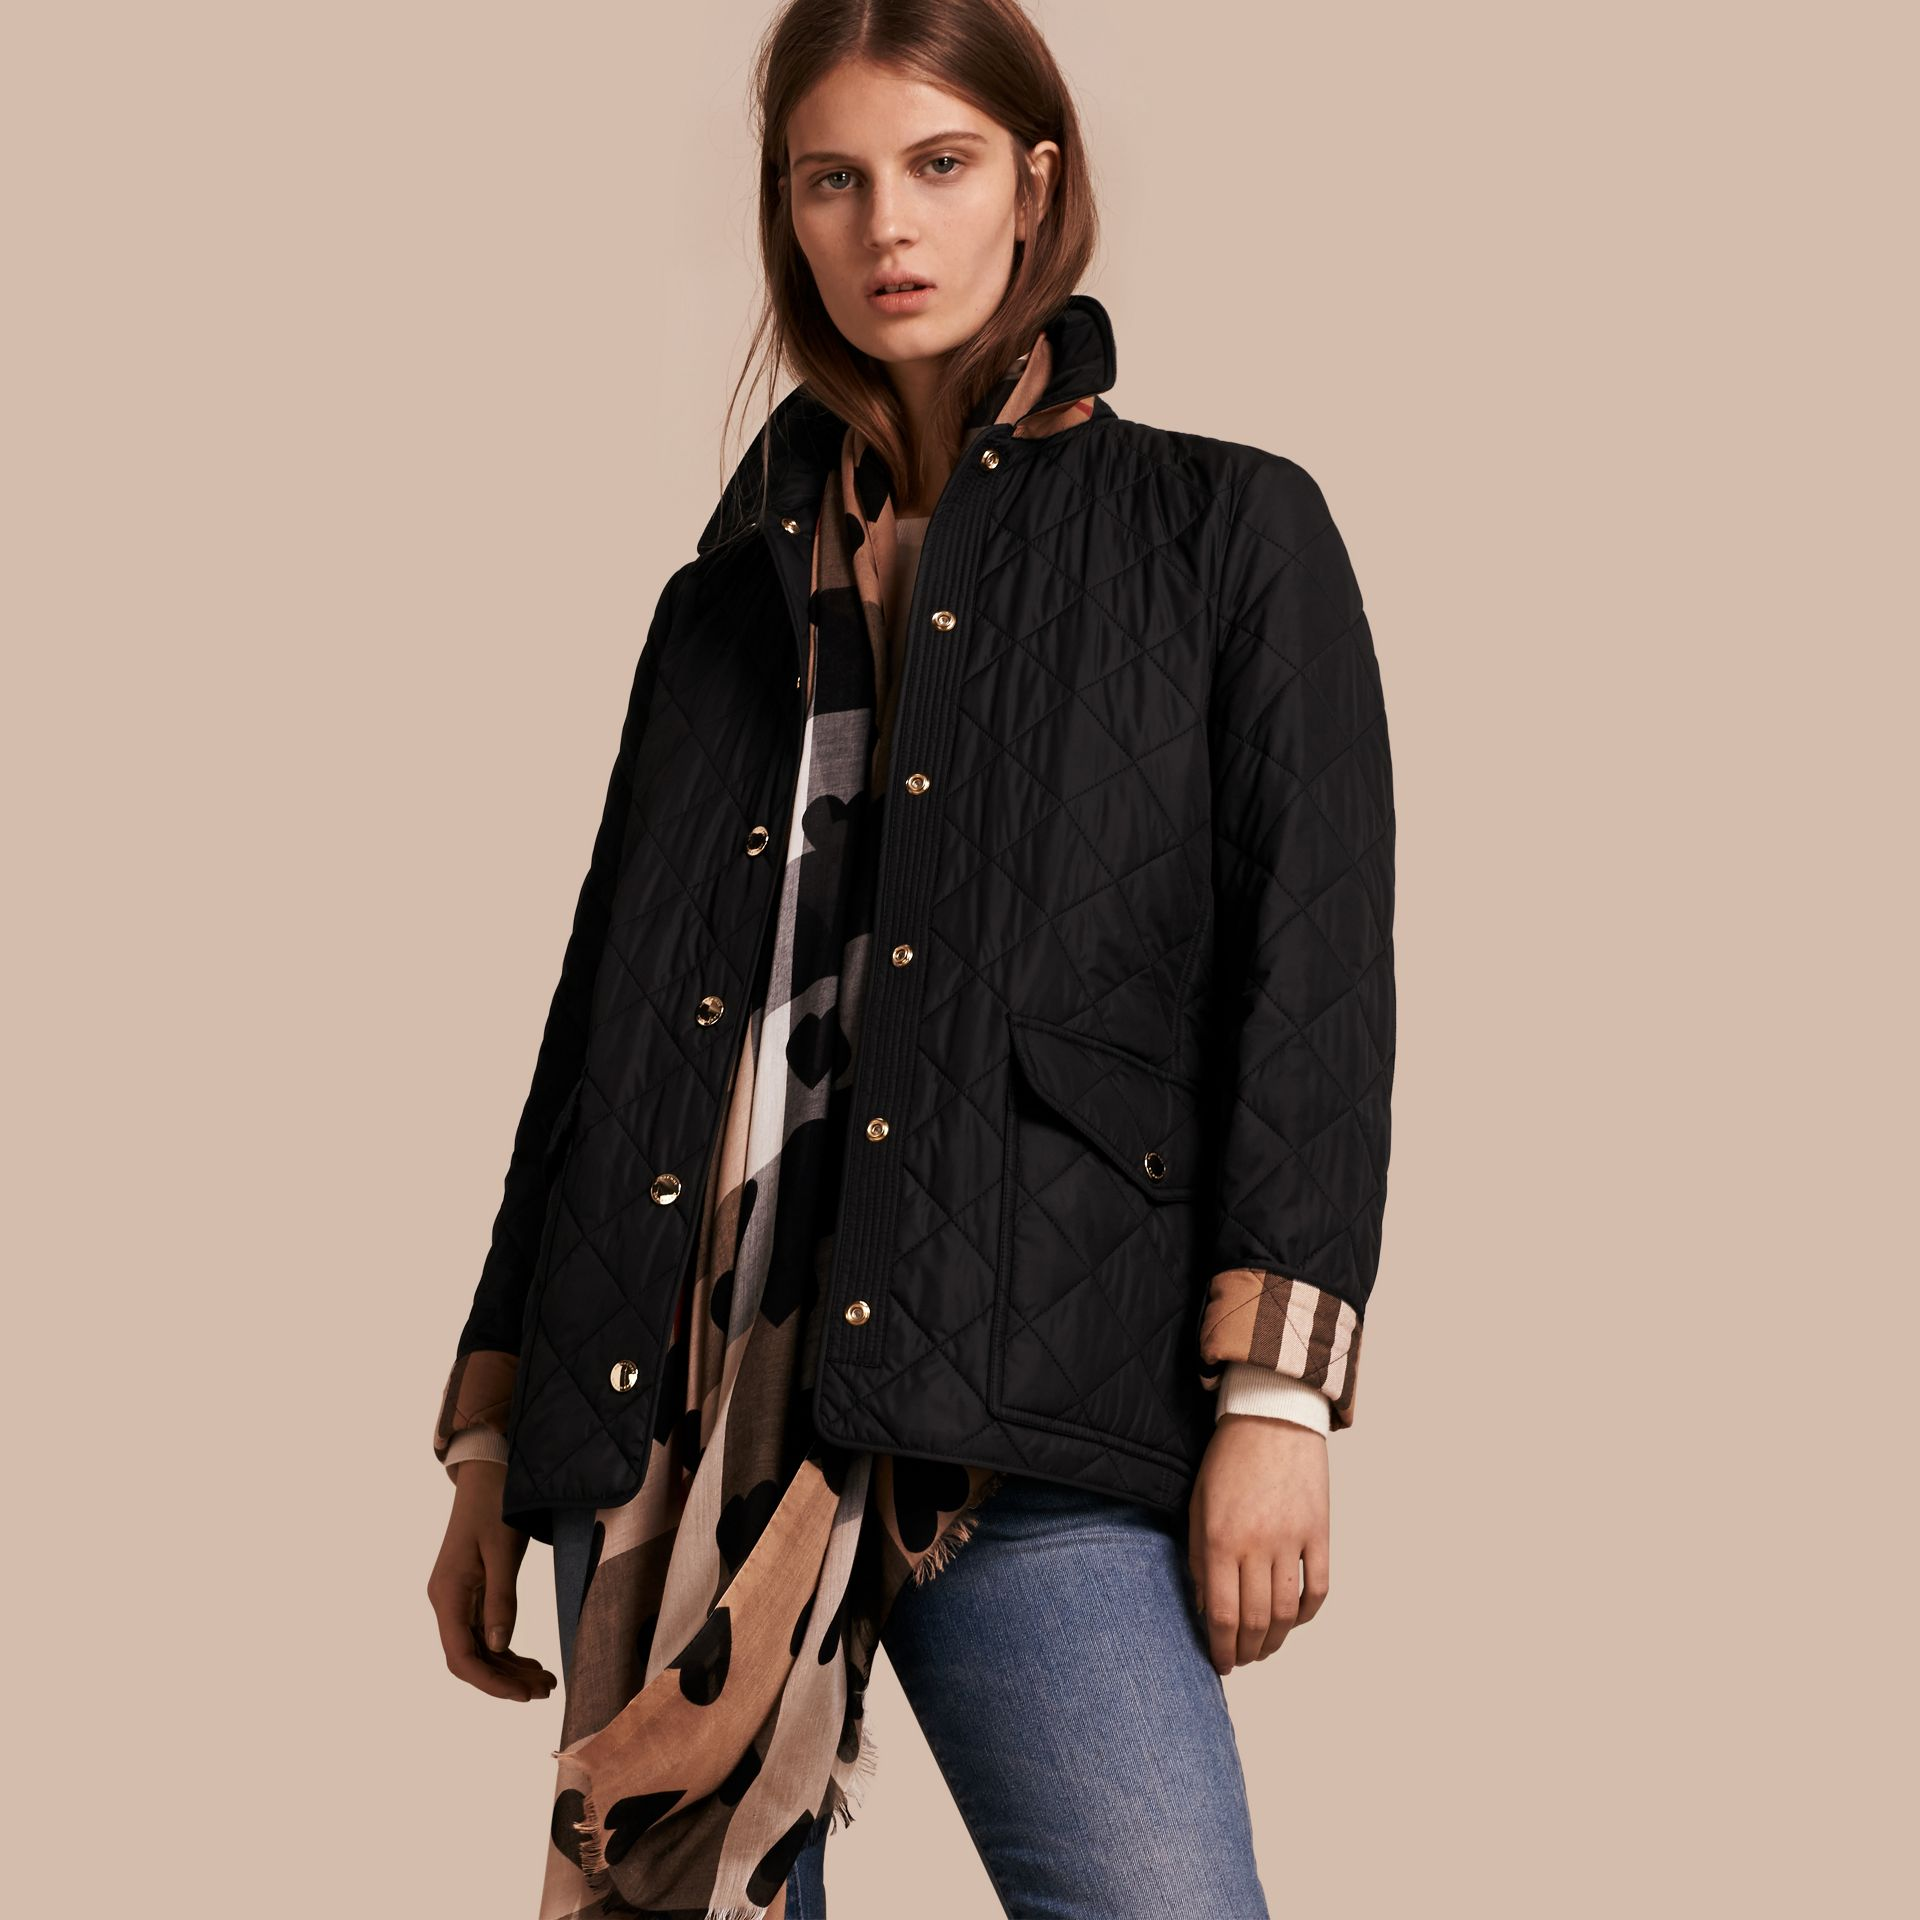 Black Check Detail Diamond Quilted Jacket Black - gallery image 1